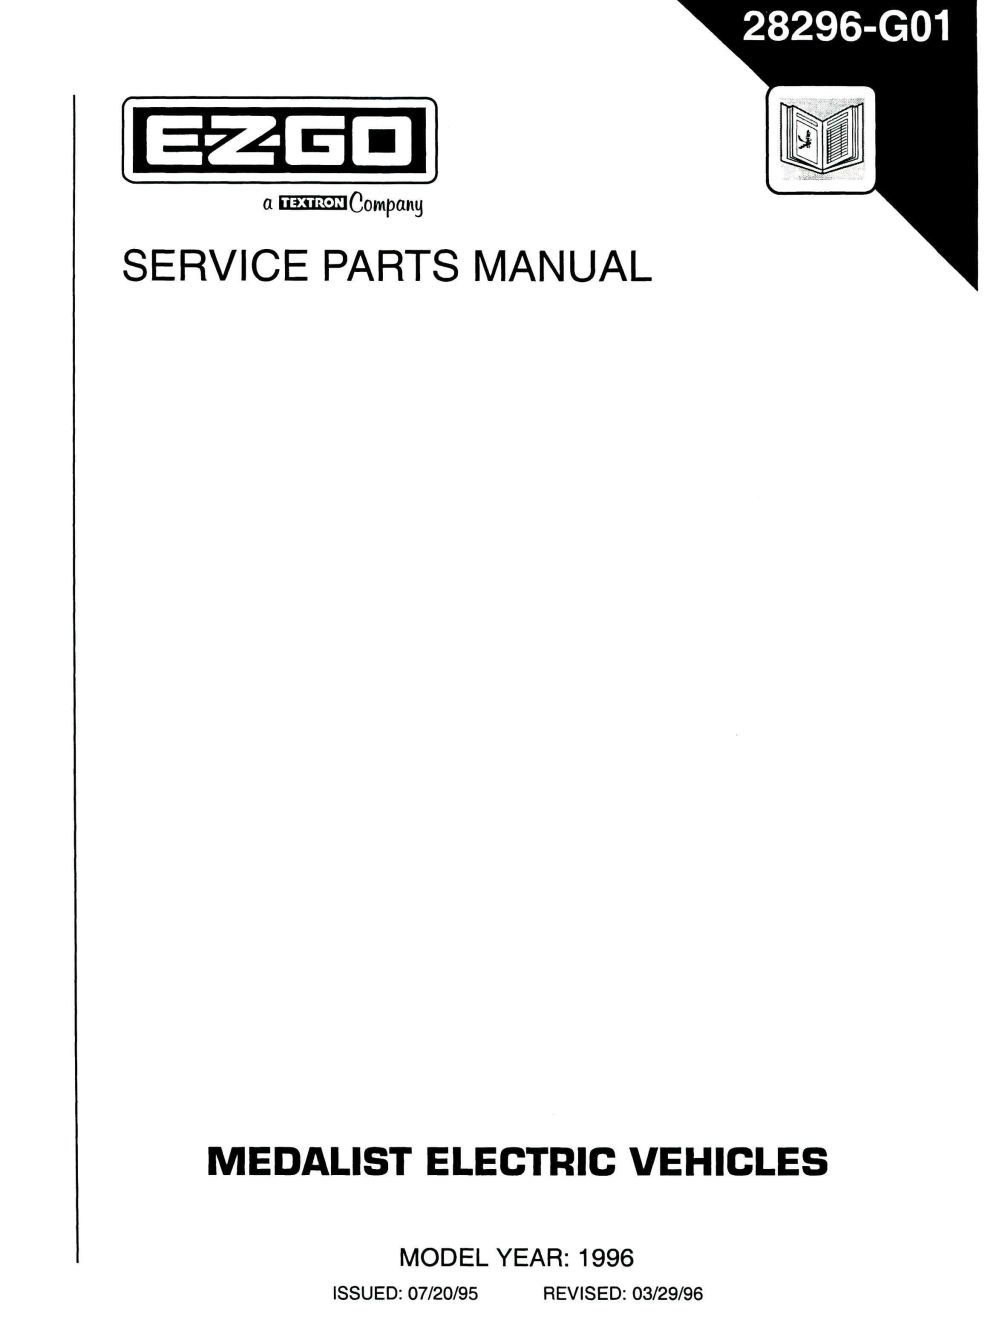 medium resolution of pu22 380 parts manual electric 94 96